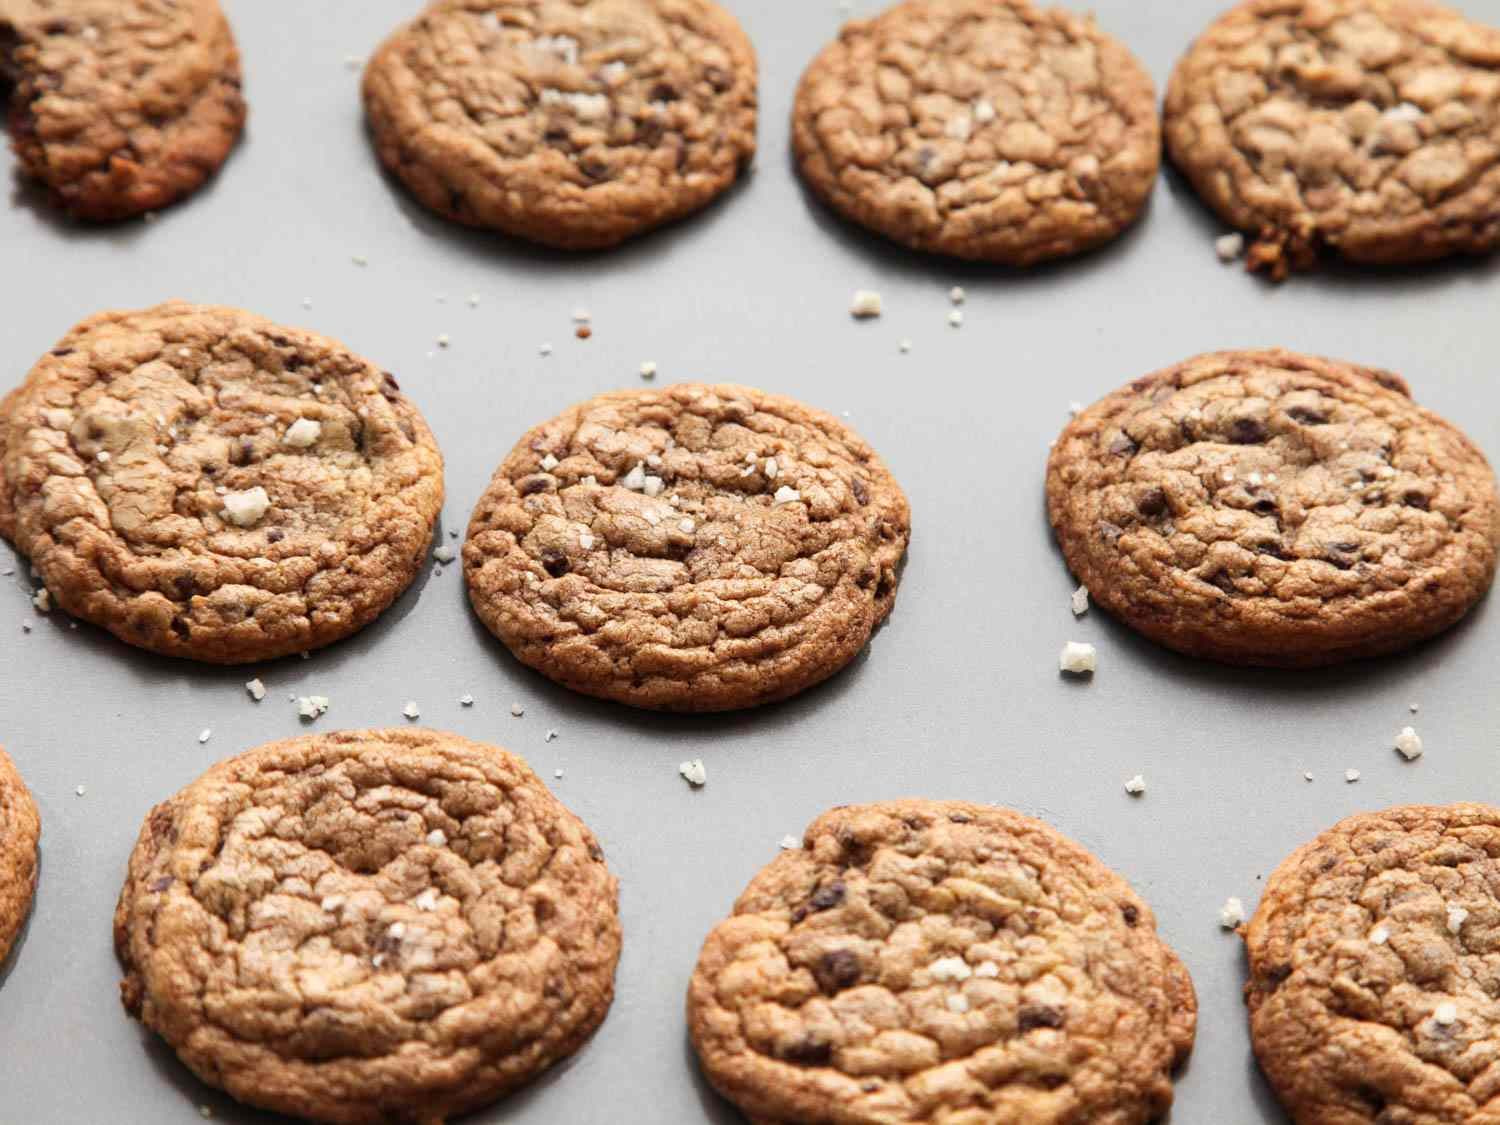 An array of chocolate chip cookies on a grey background.